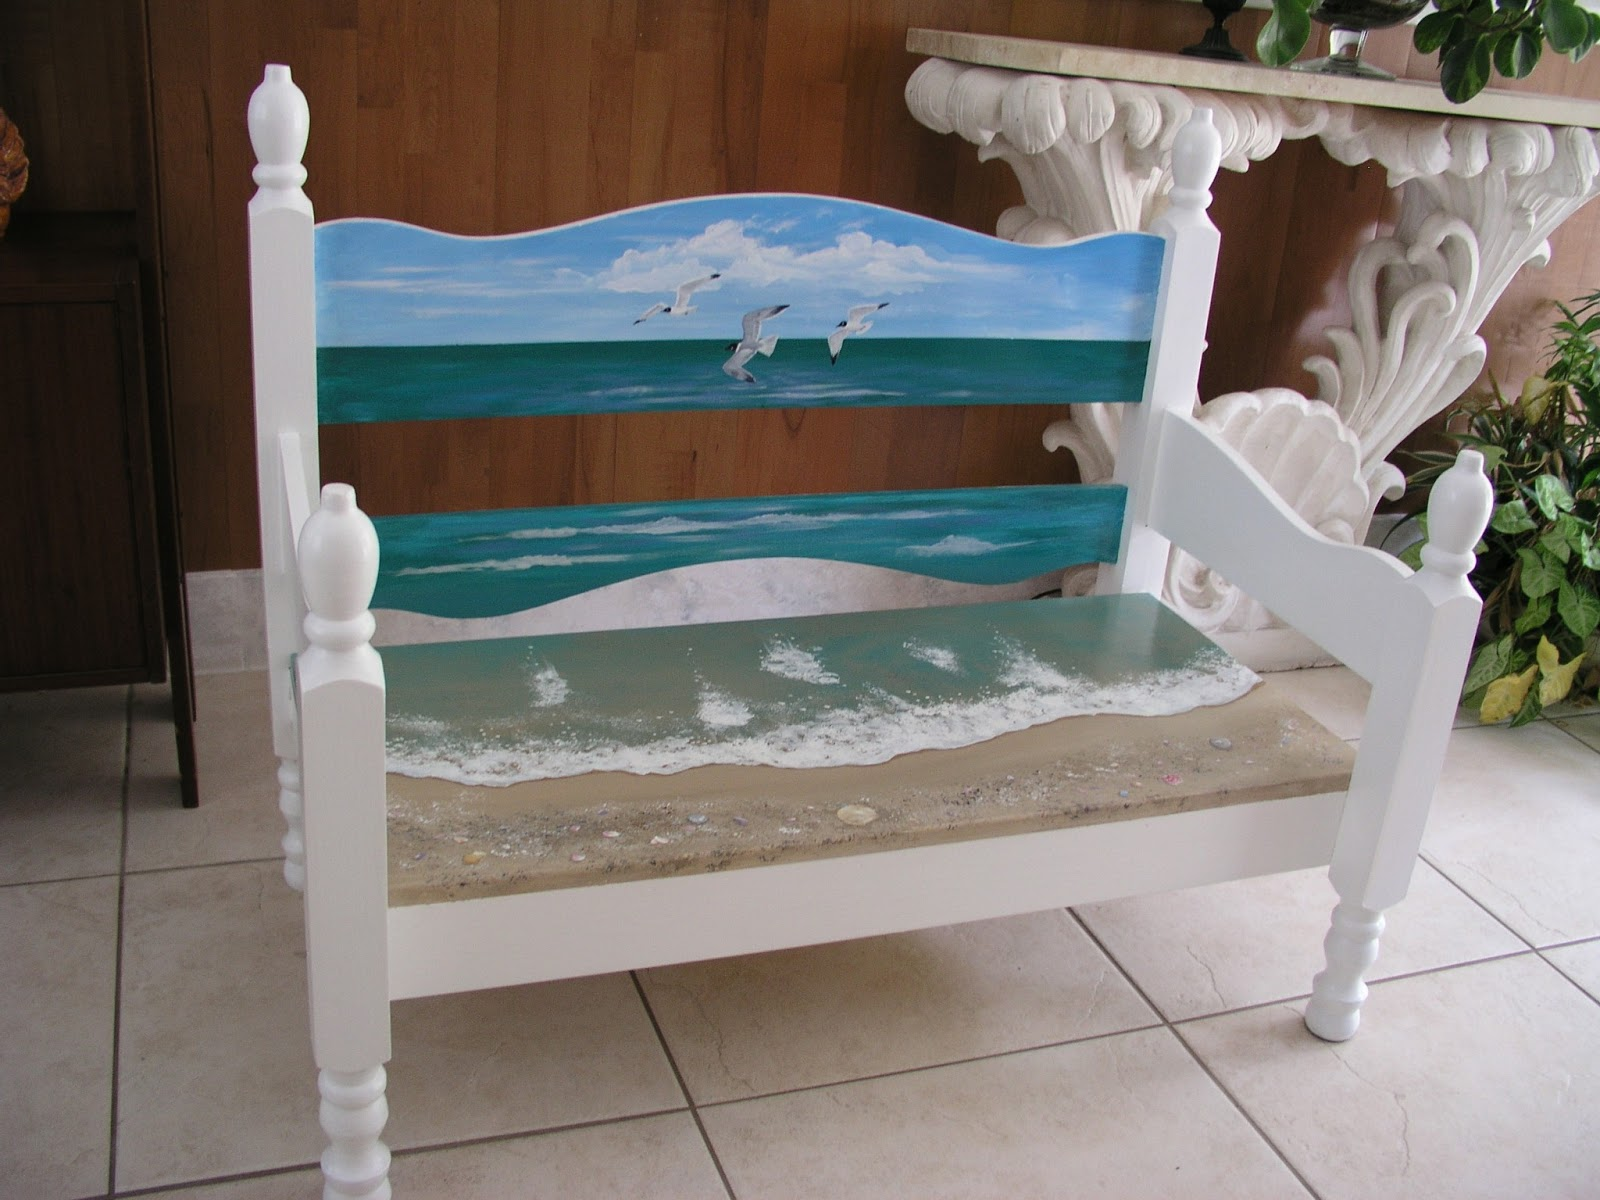 Benchsite Sea Benches For World Oceans Day